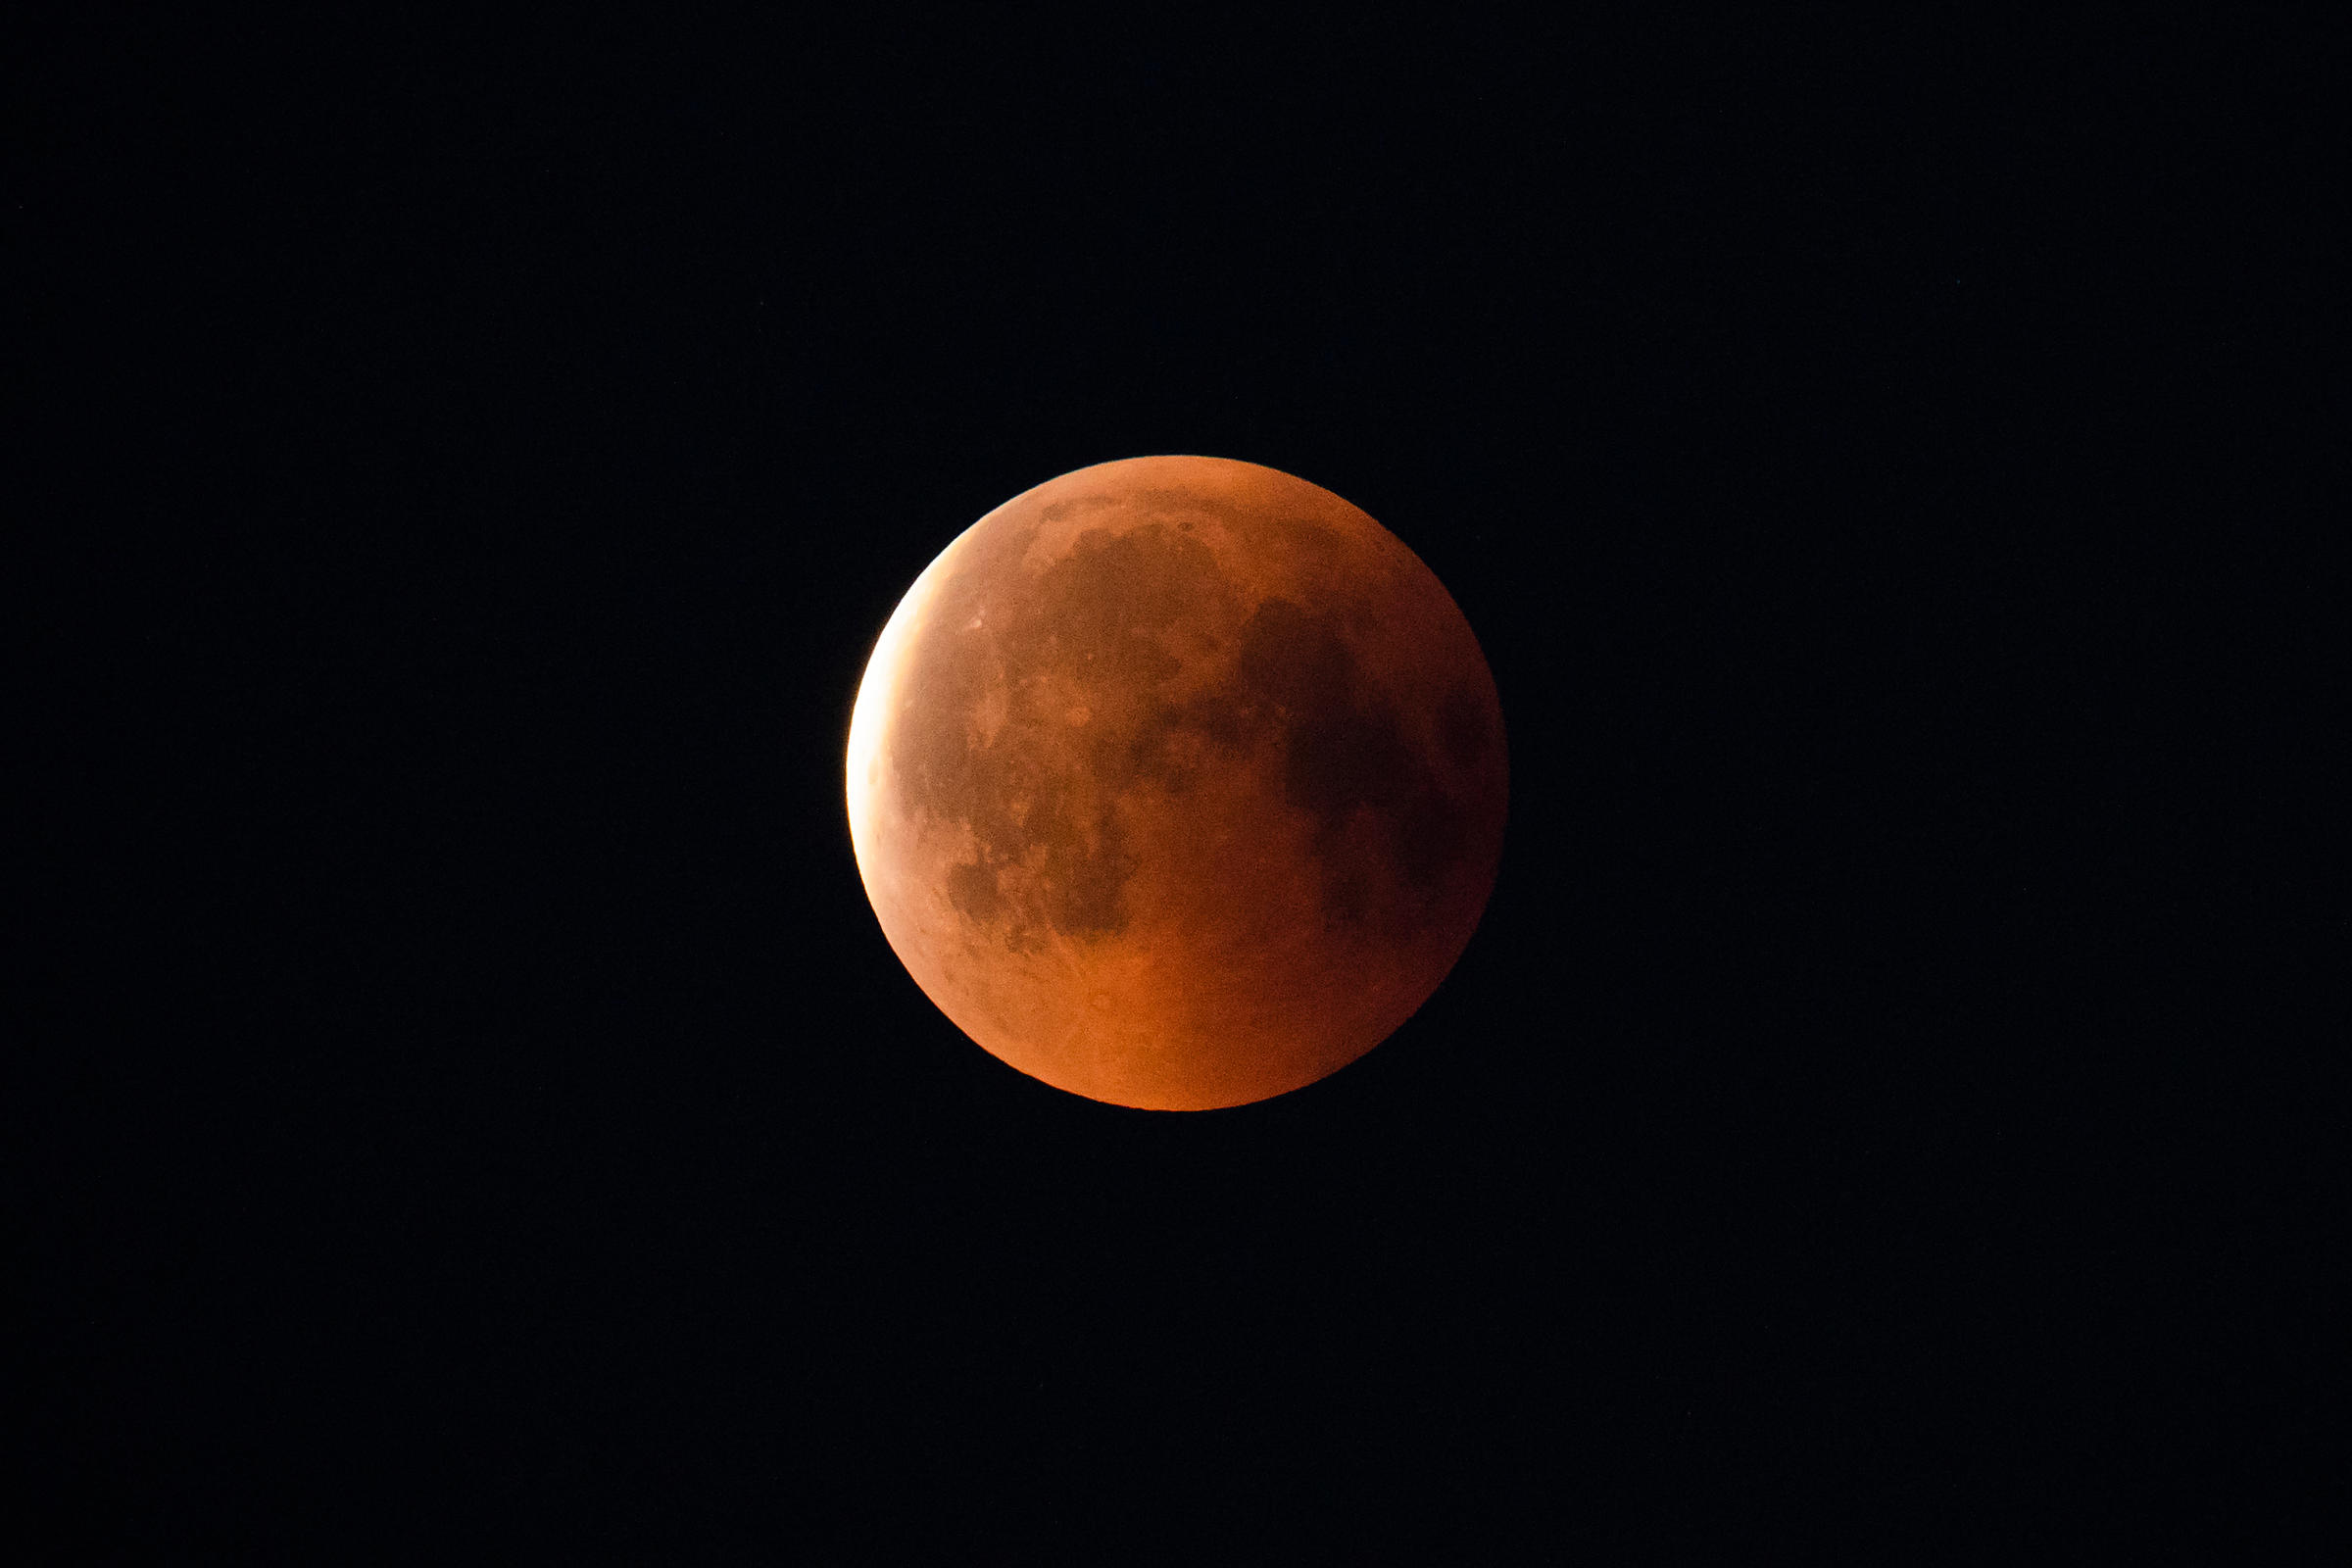 Lunar eclipse on July 27 2018.